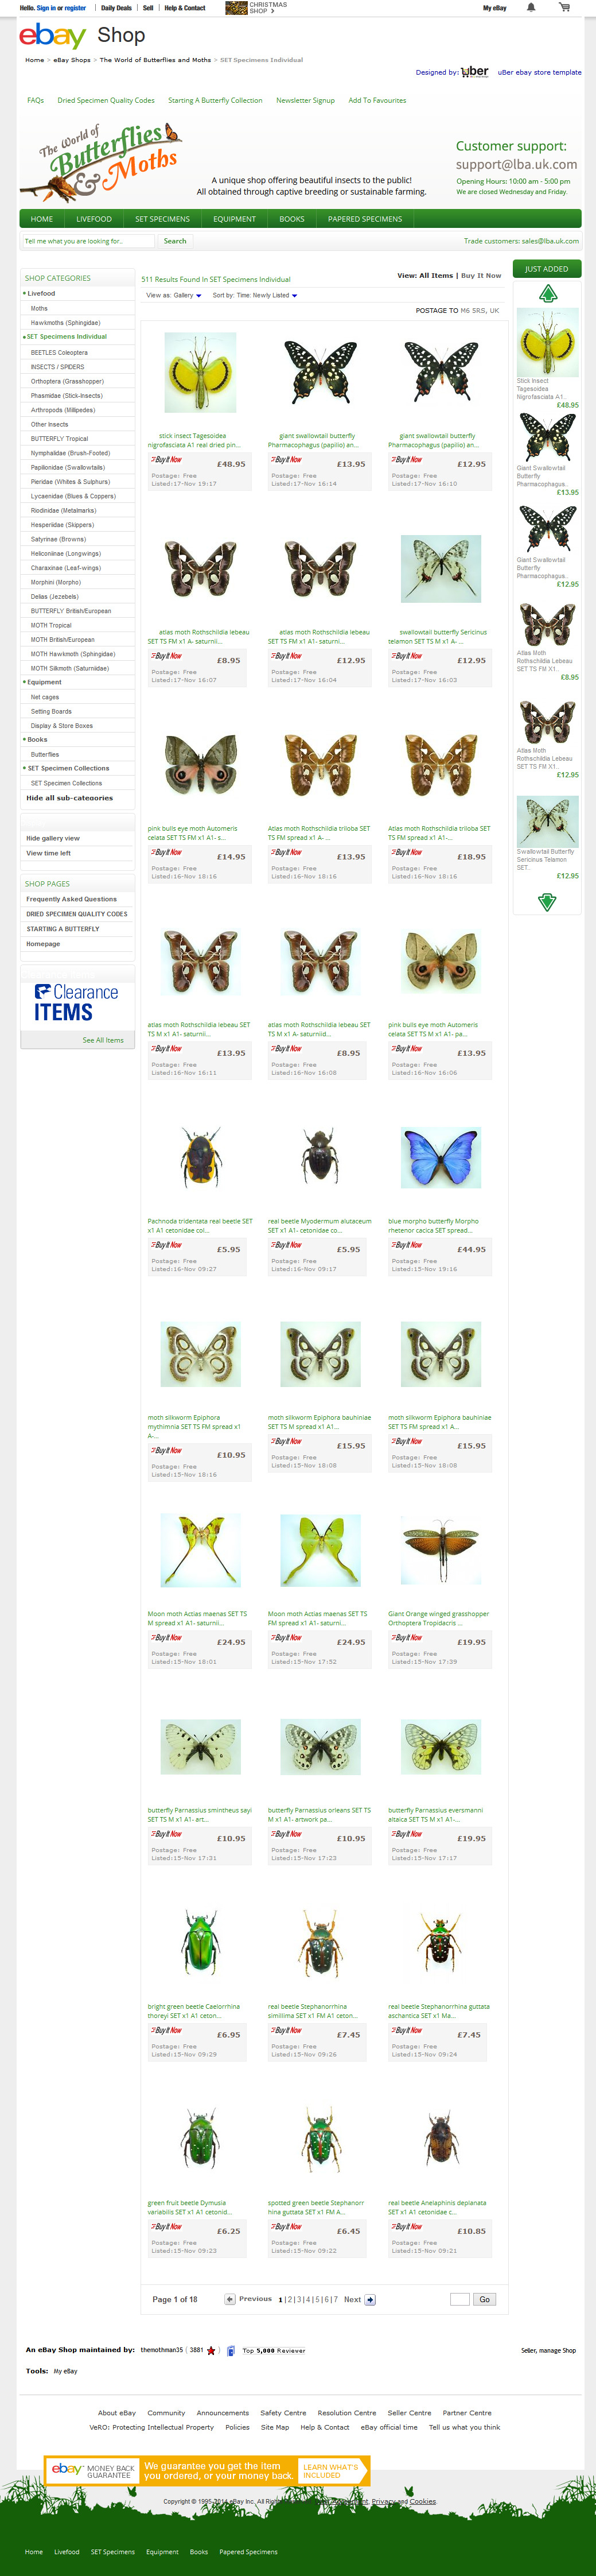 butterflyandmoths-ebay-shop-category-design